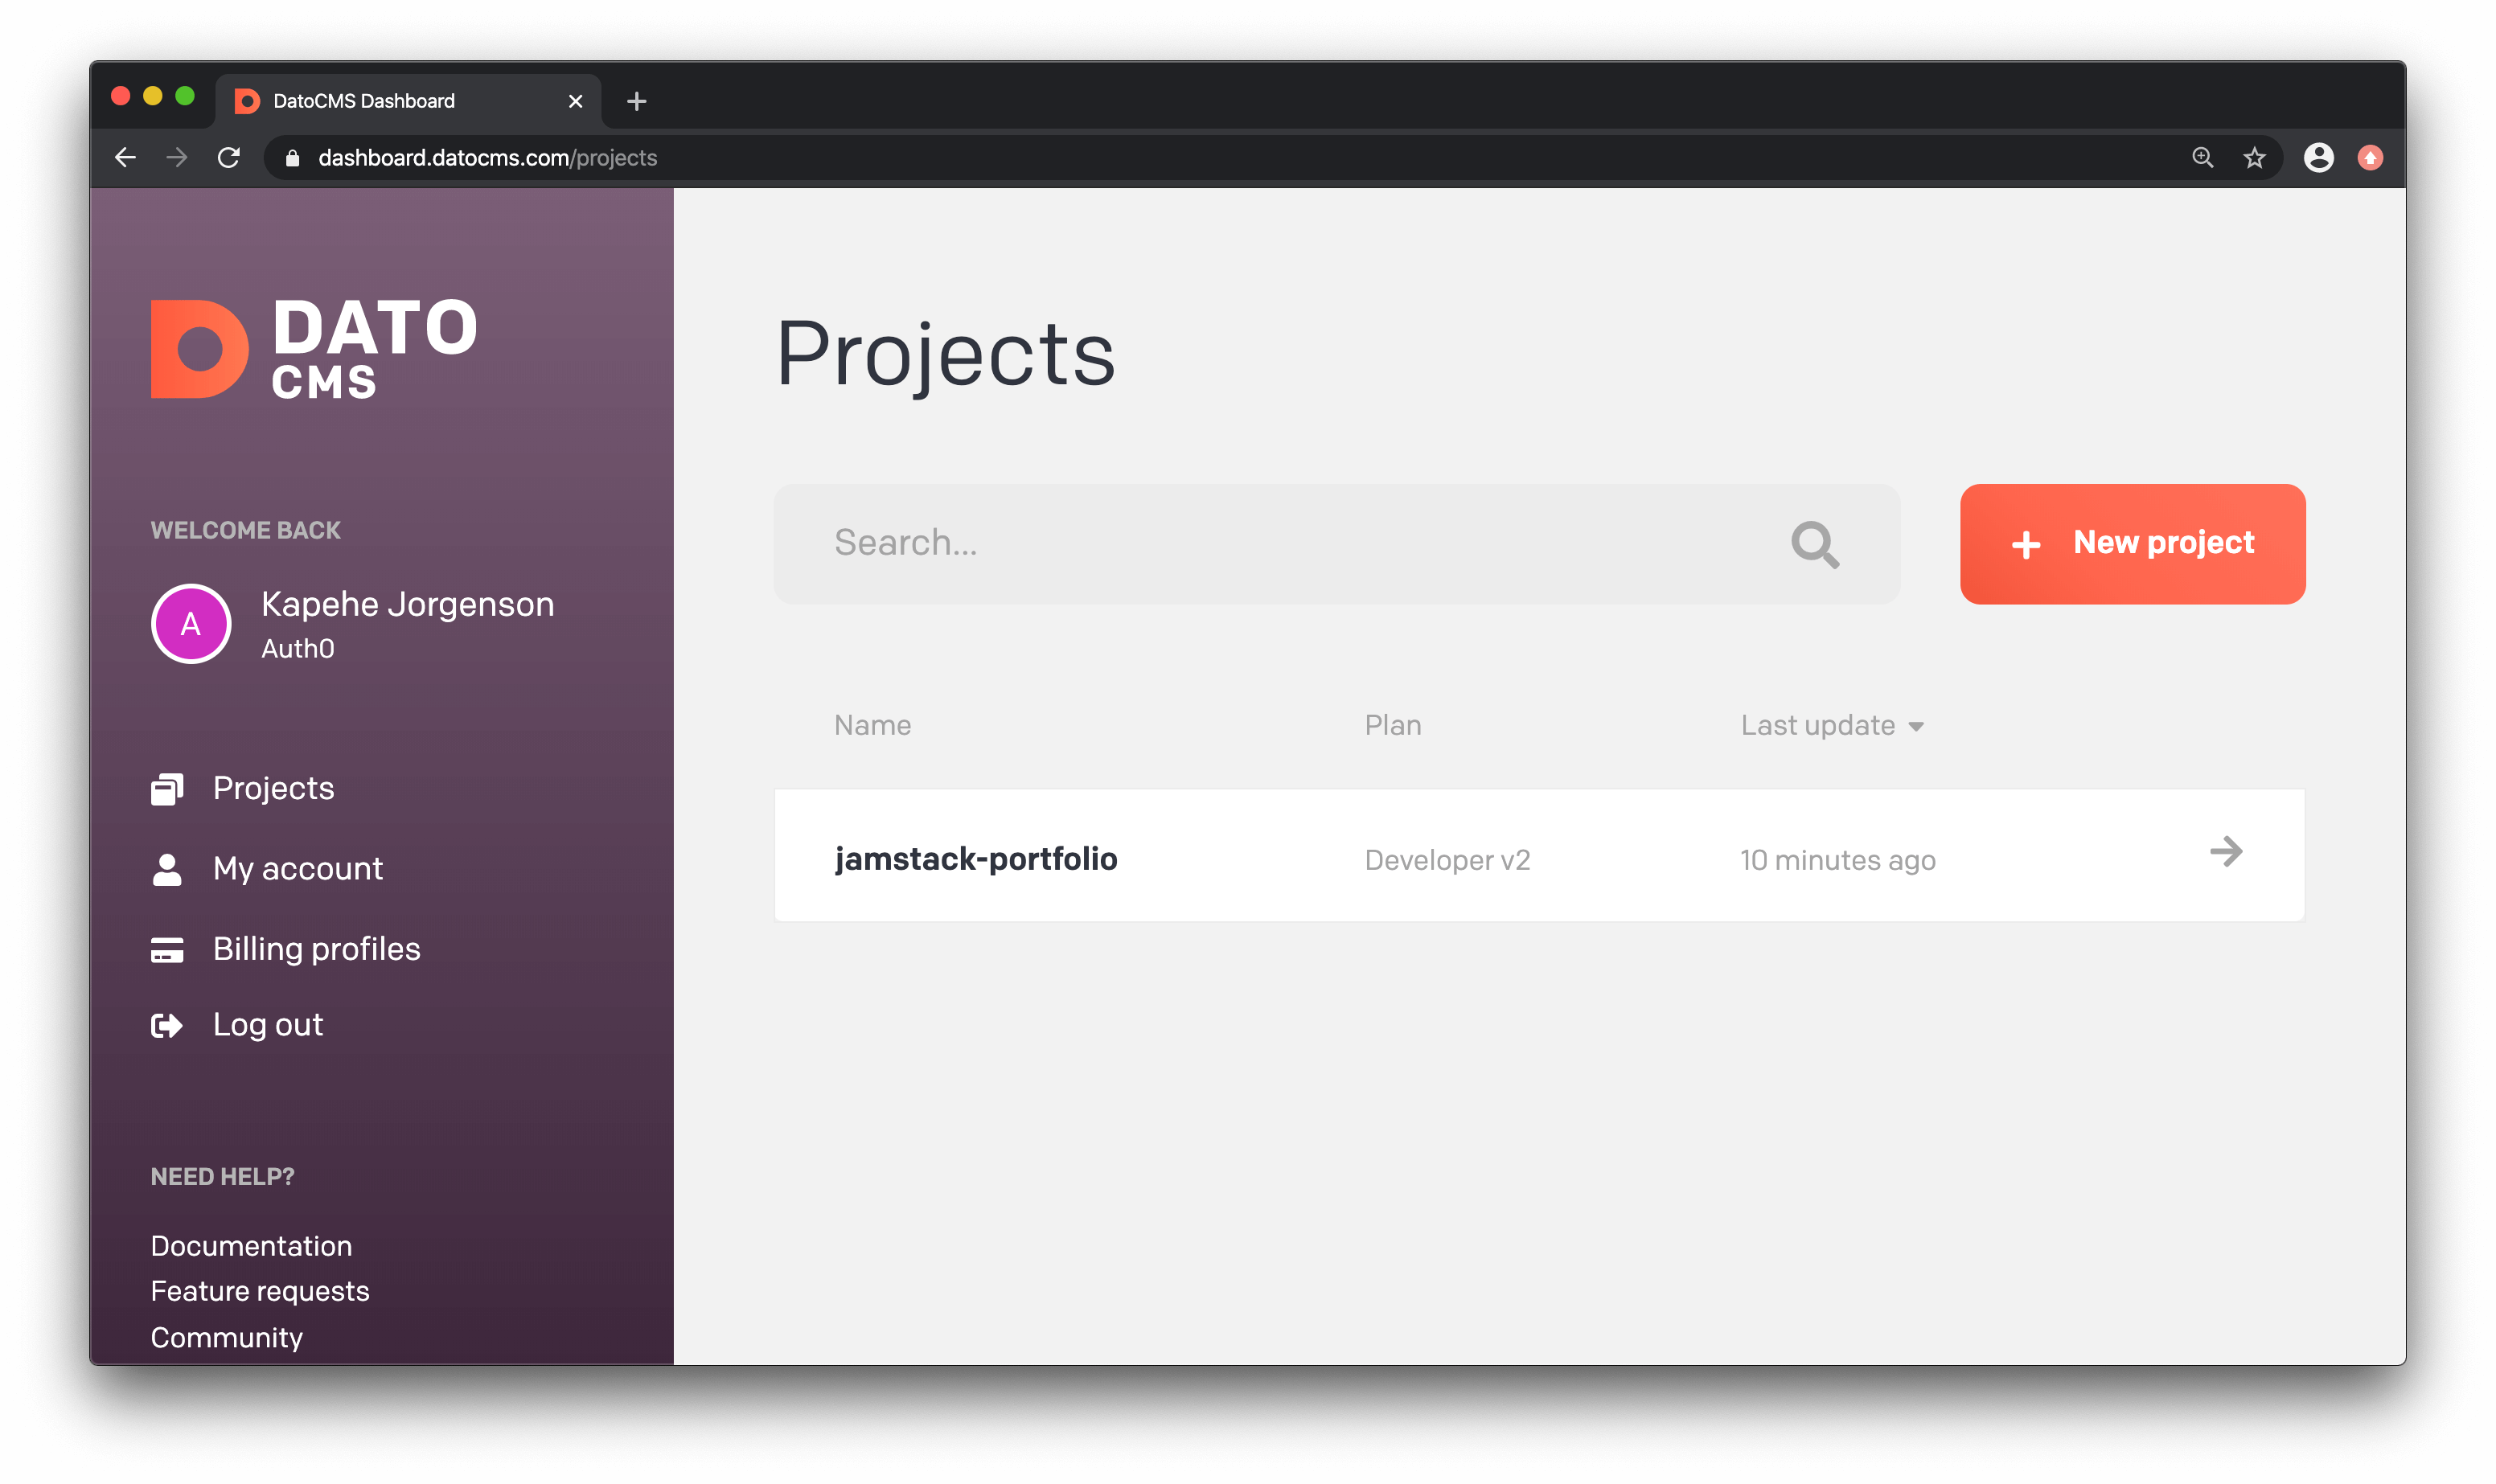 DatoCMS Dashboard view